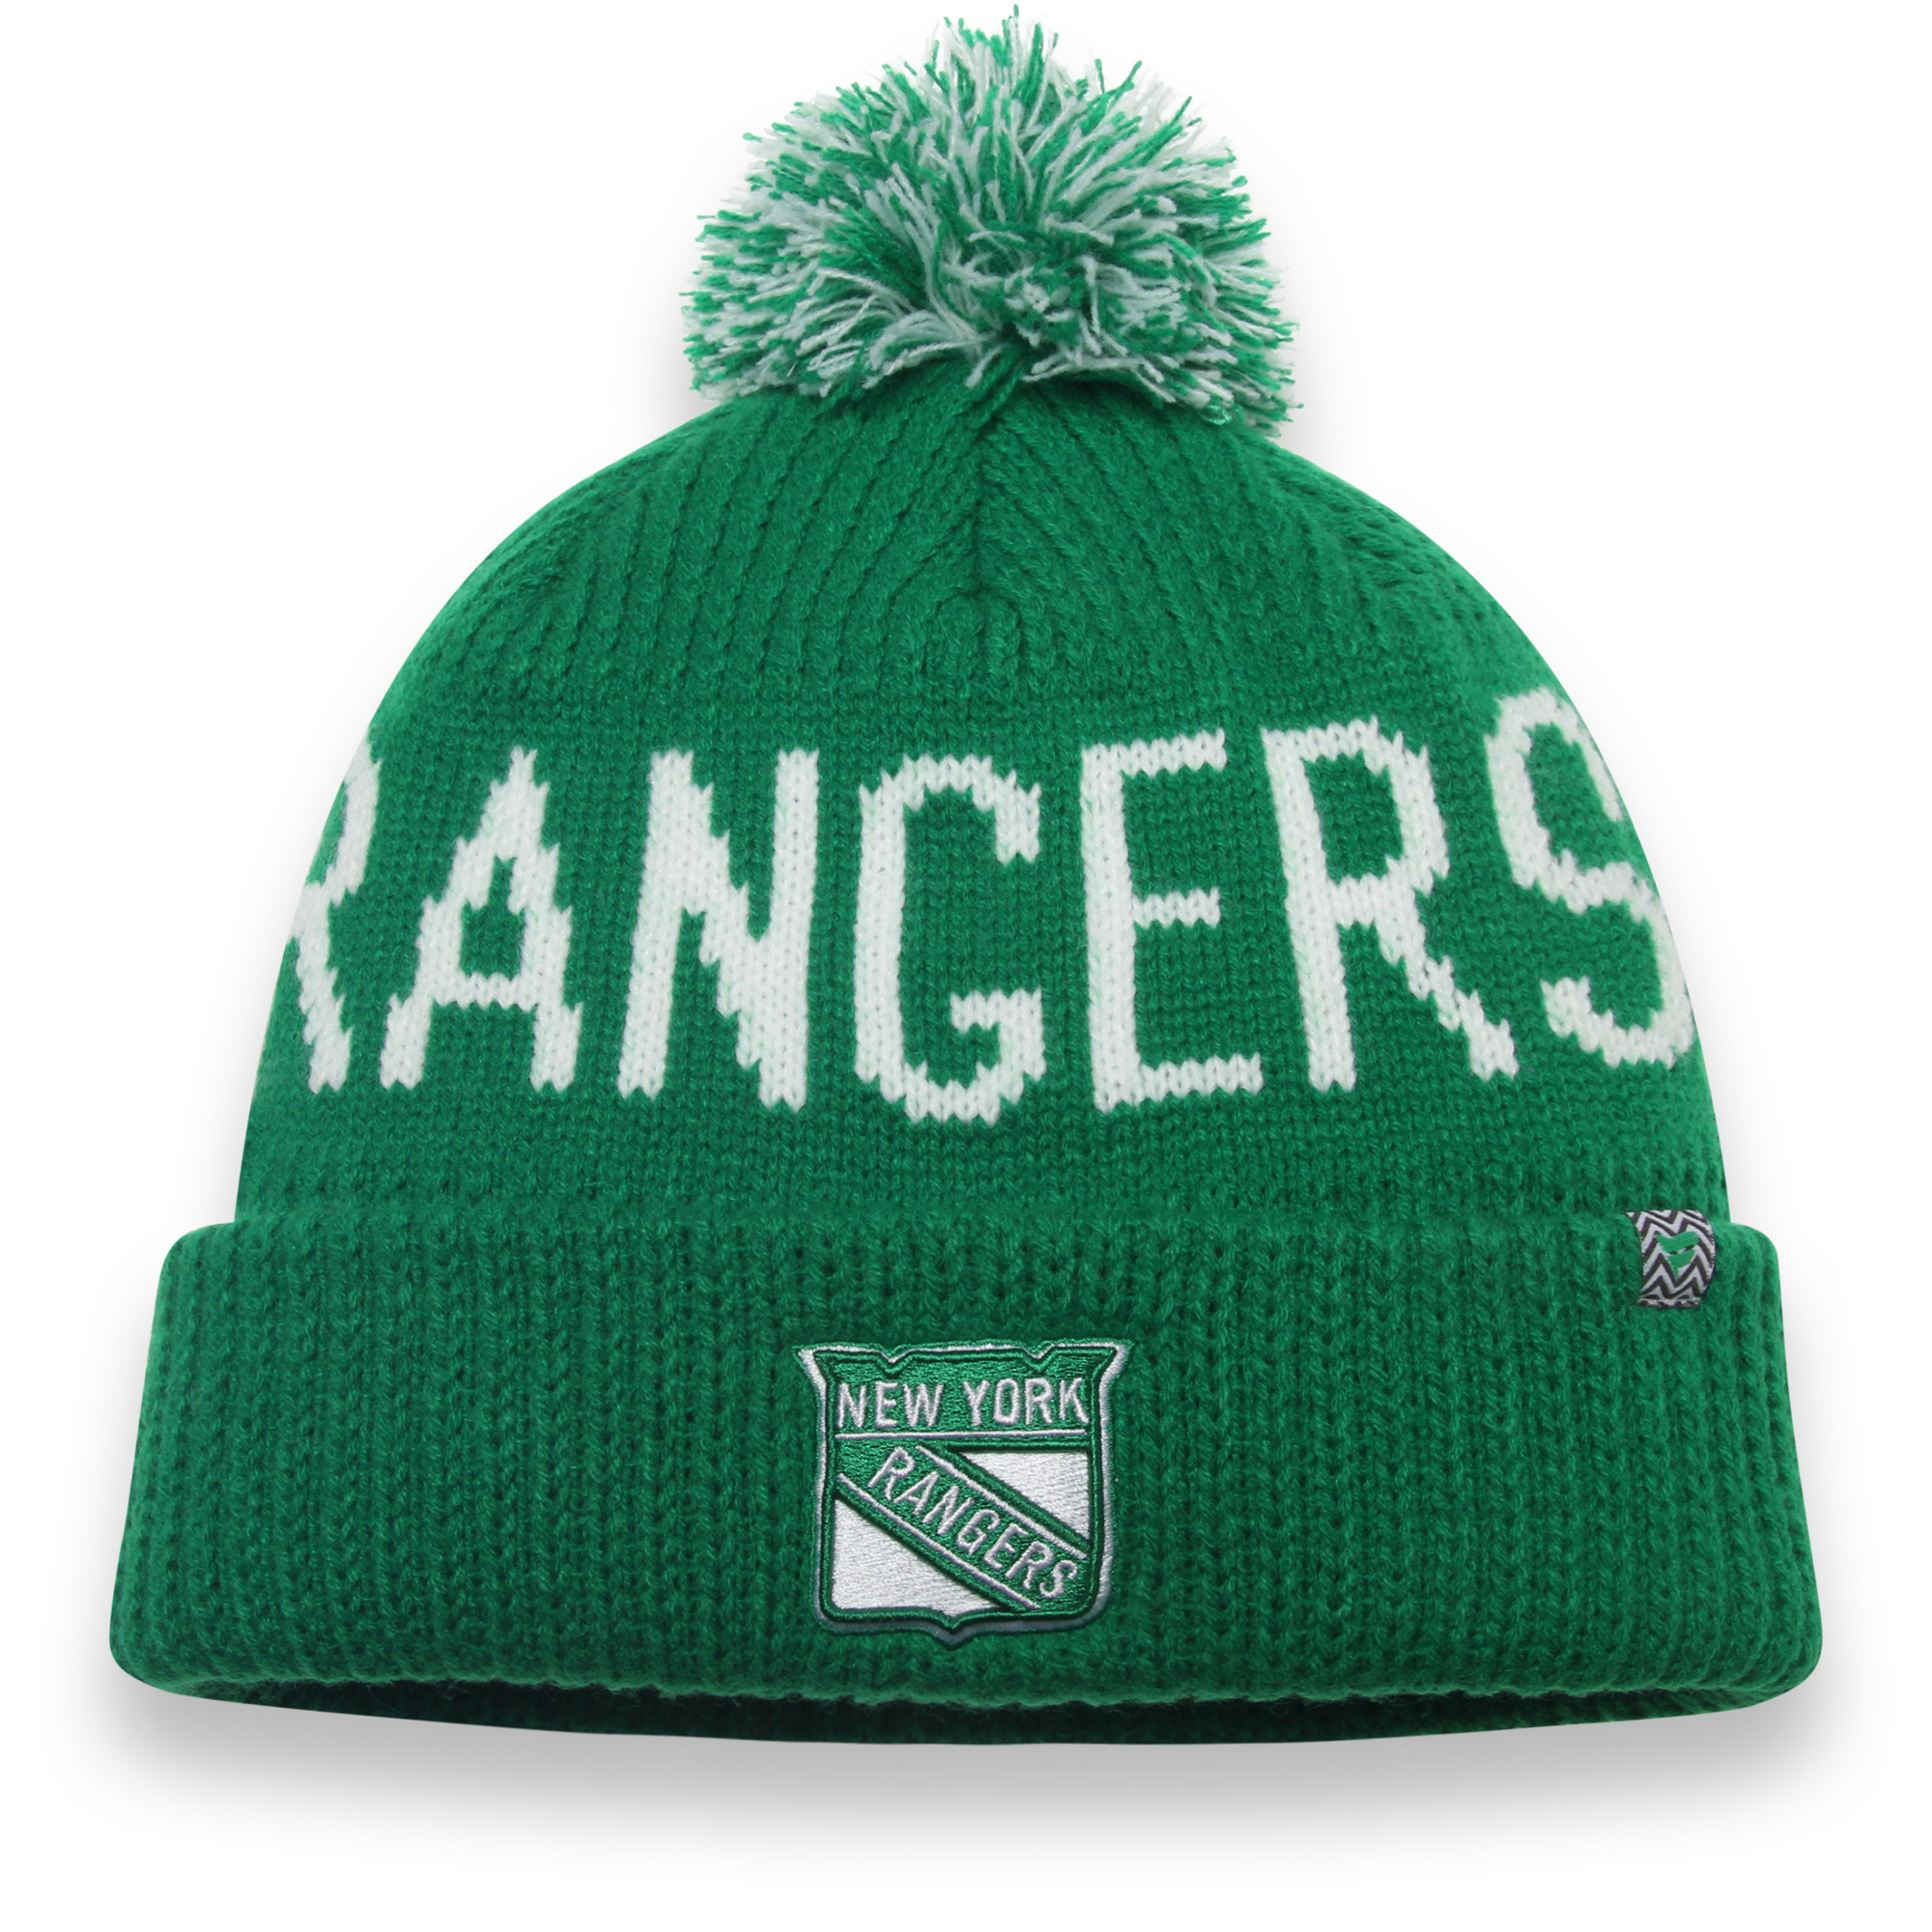 New York Rangers Fanatics Branded St. Patrick's Day Cuffed Knit Hat with Pom - Green - OSFA